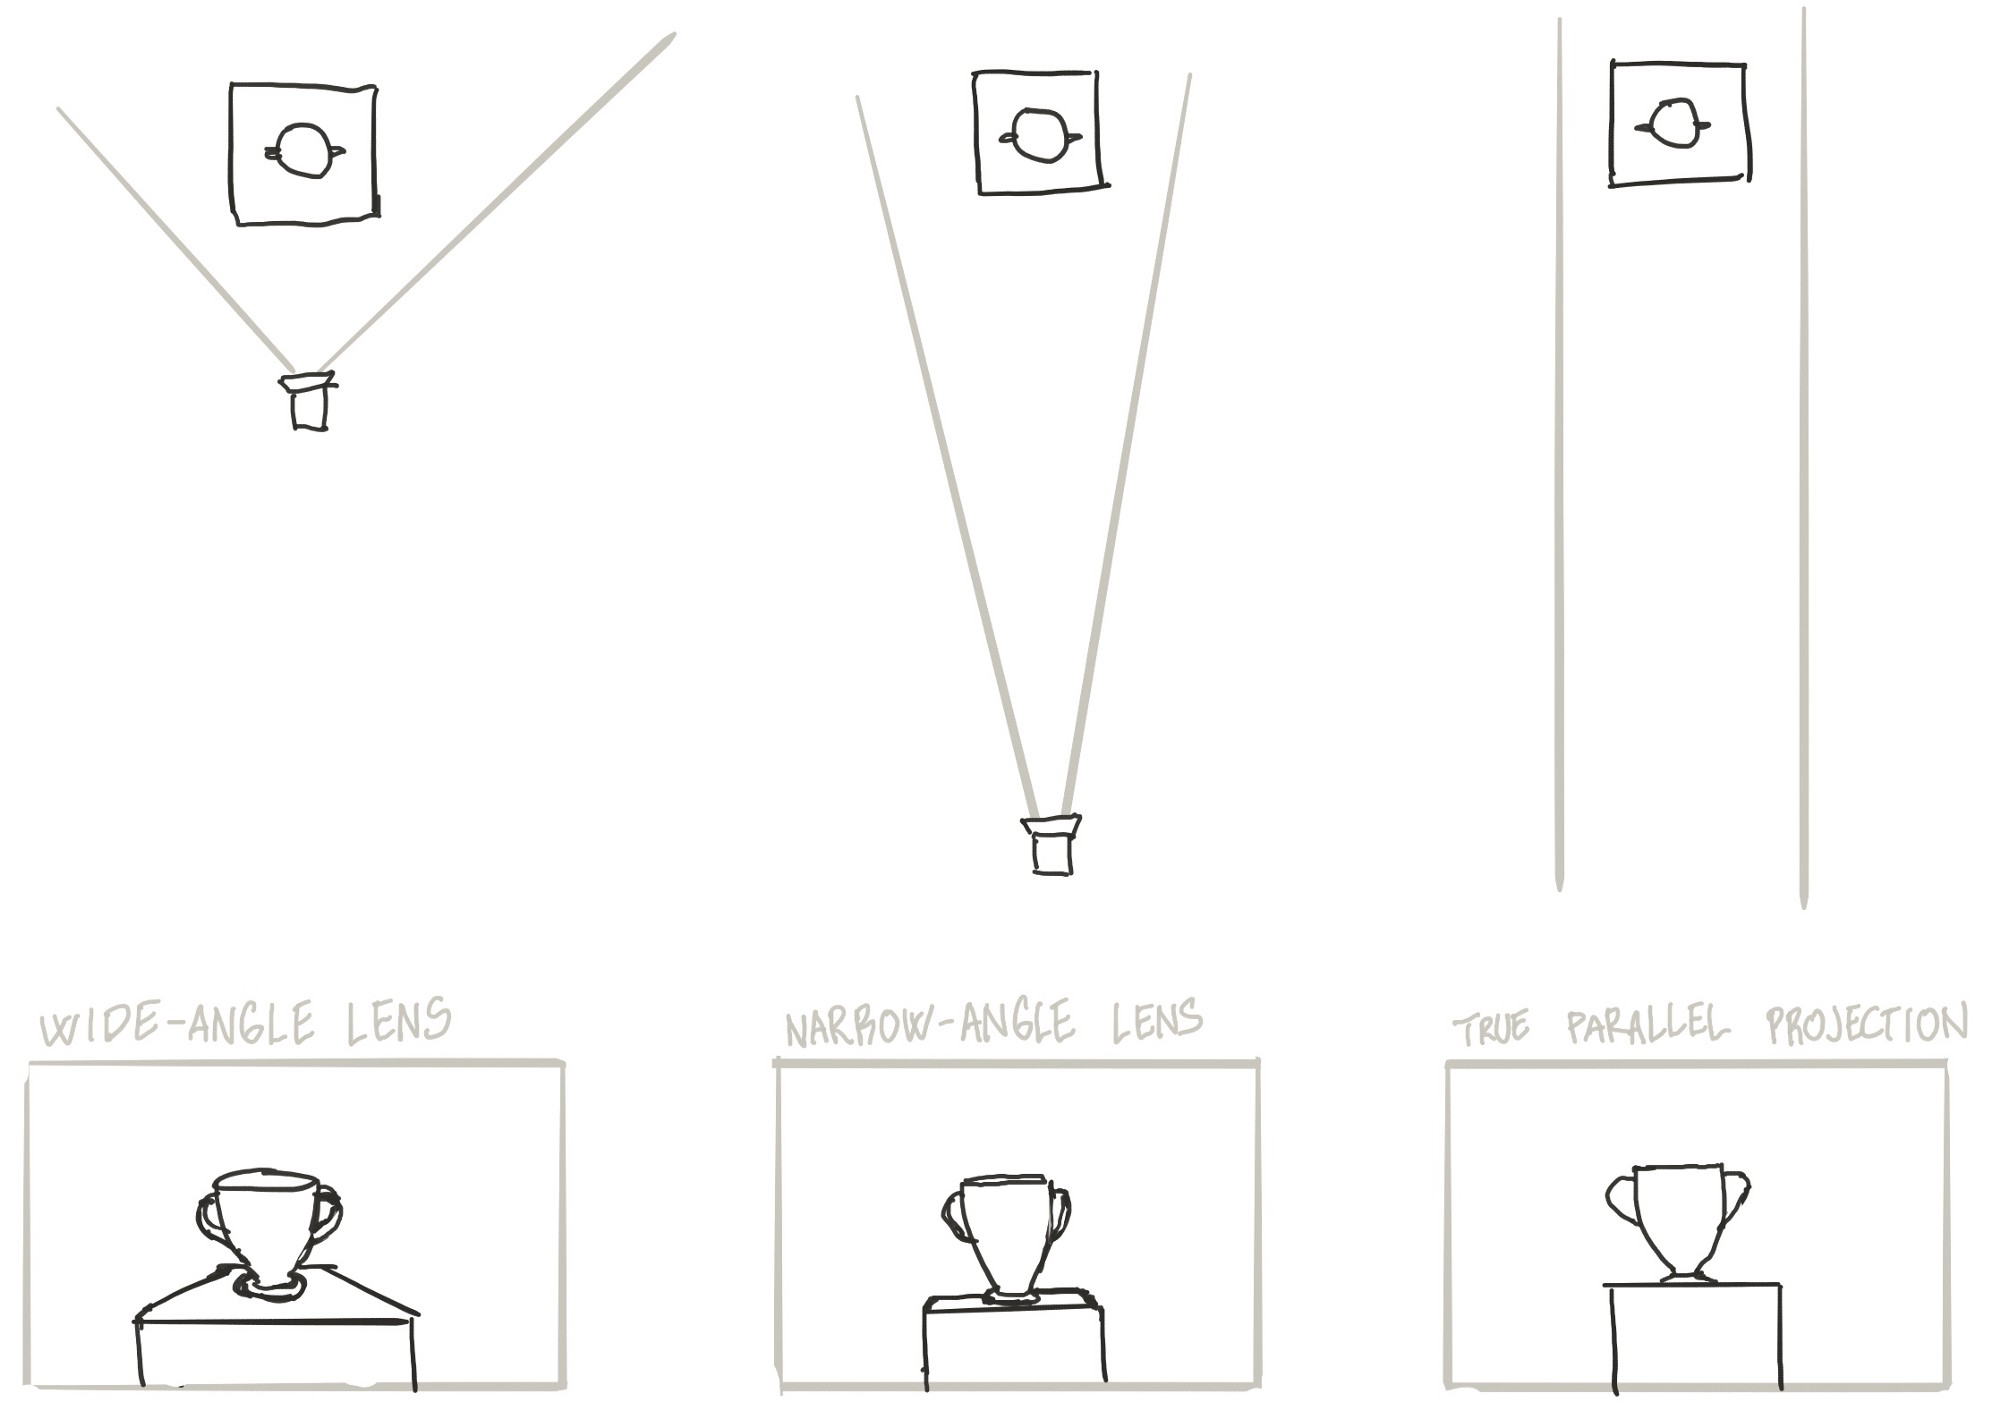 Game developer's guide to graphical projections (with video game